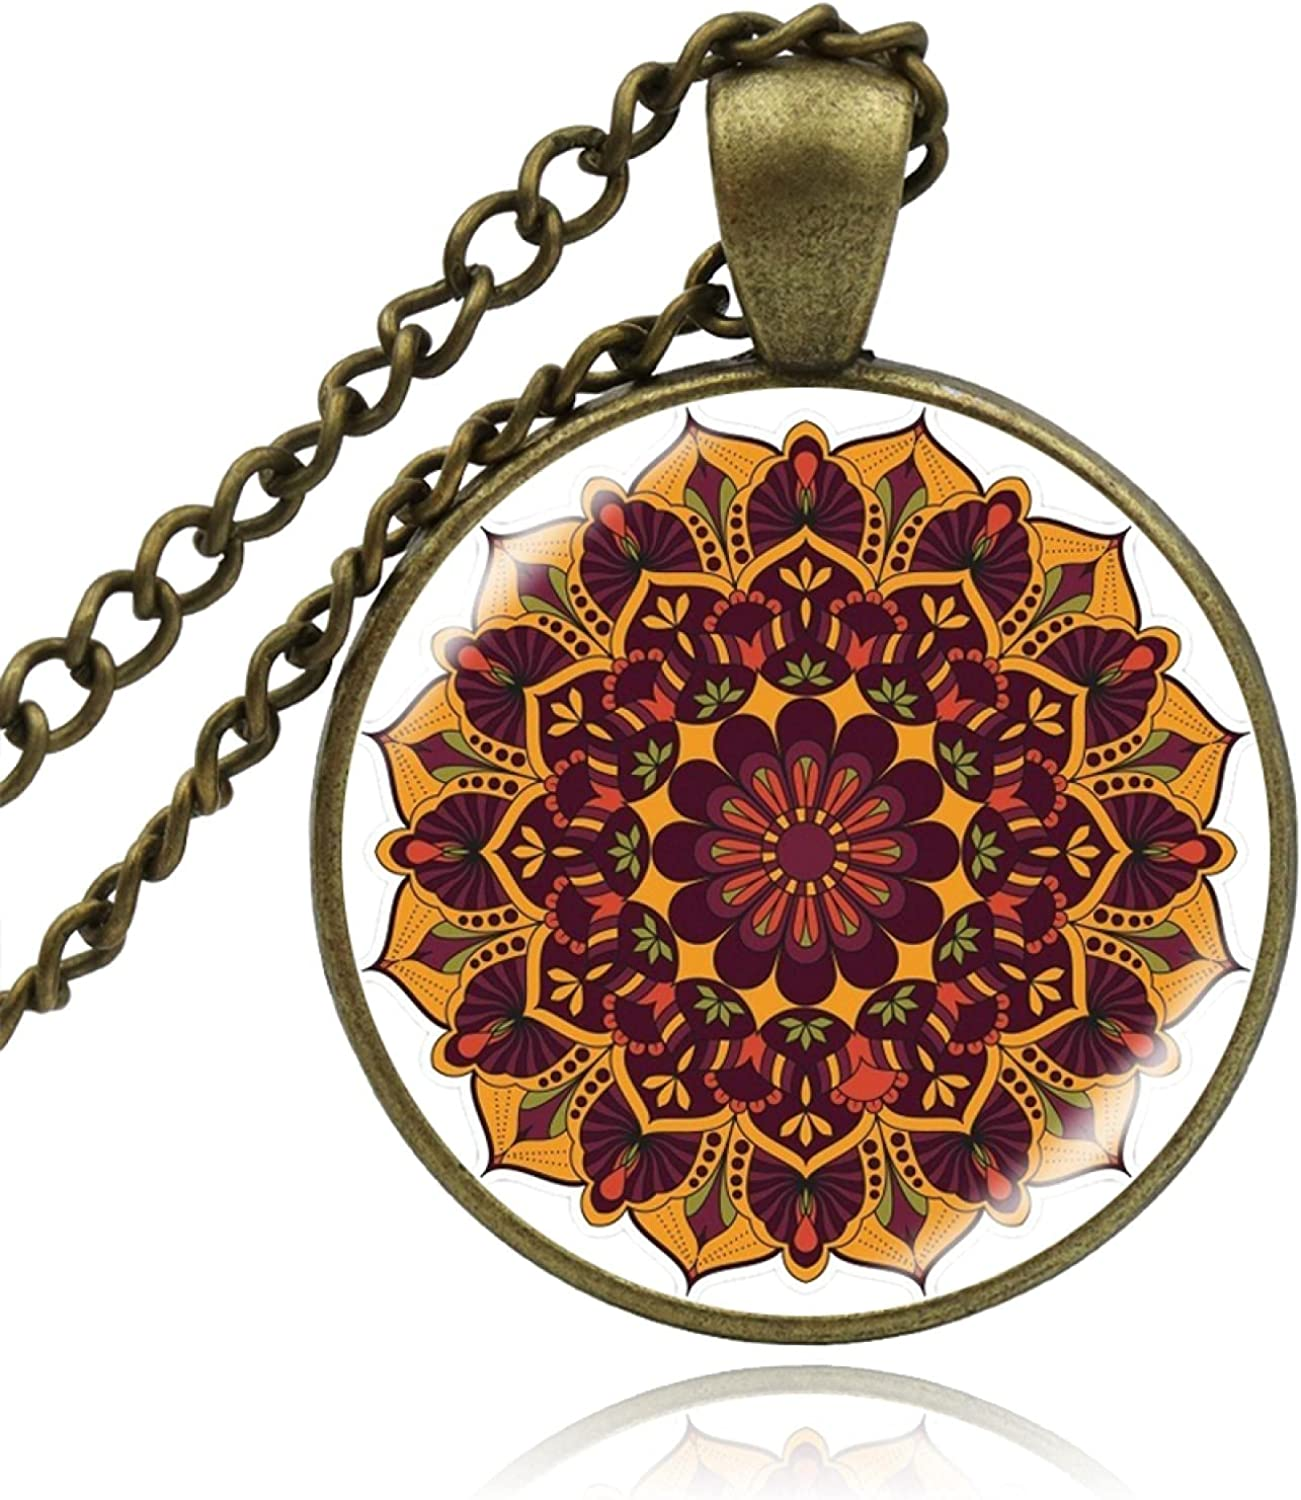 Credence sold out Yoga Pendant Necklaces Handmade Jewelry Mandala Necklace Lotus B